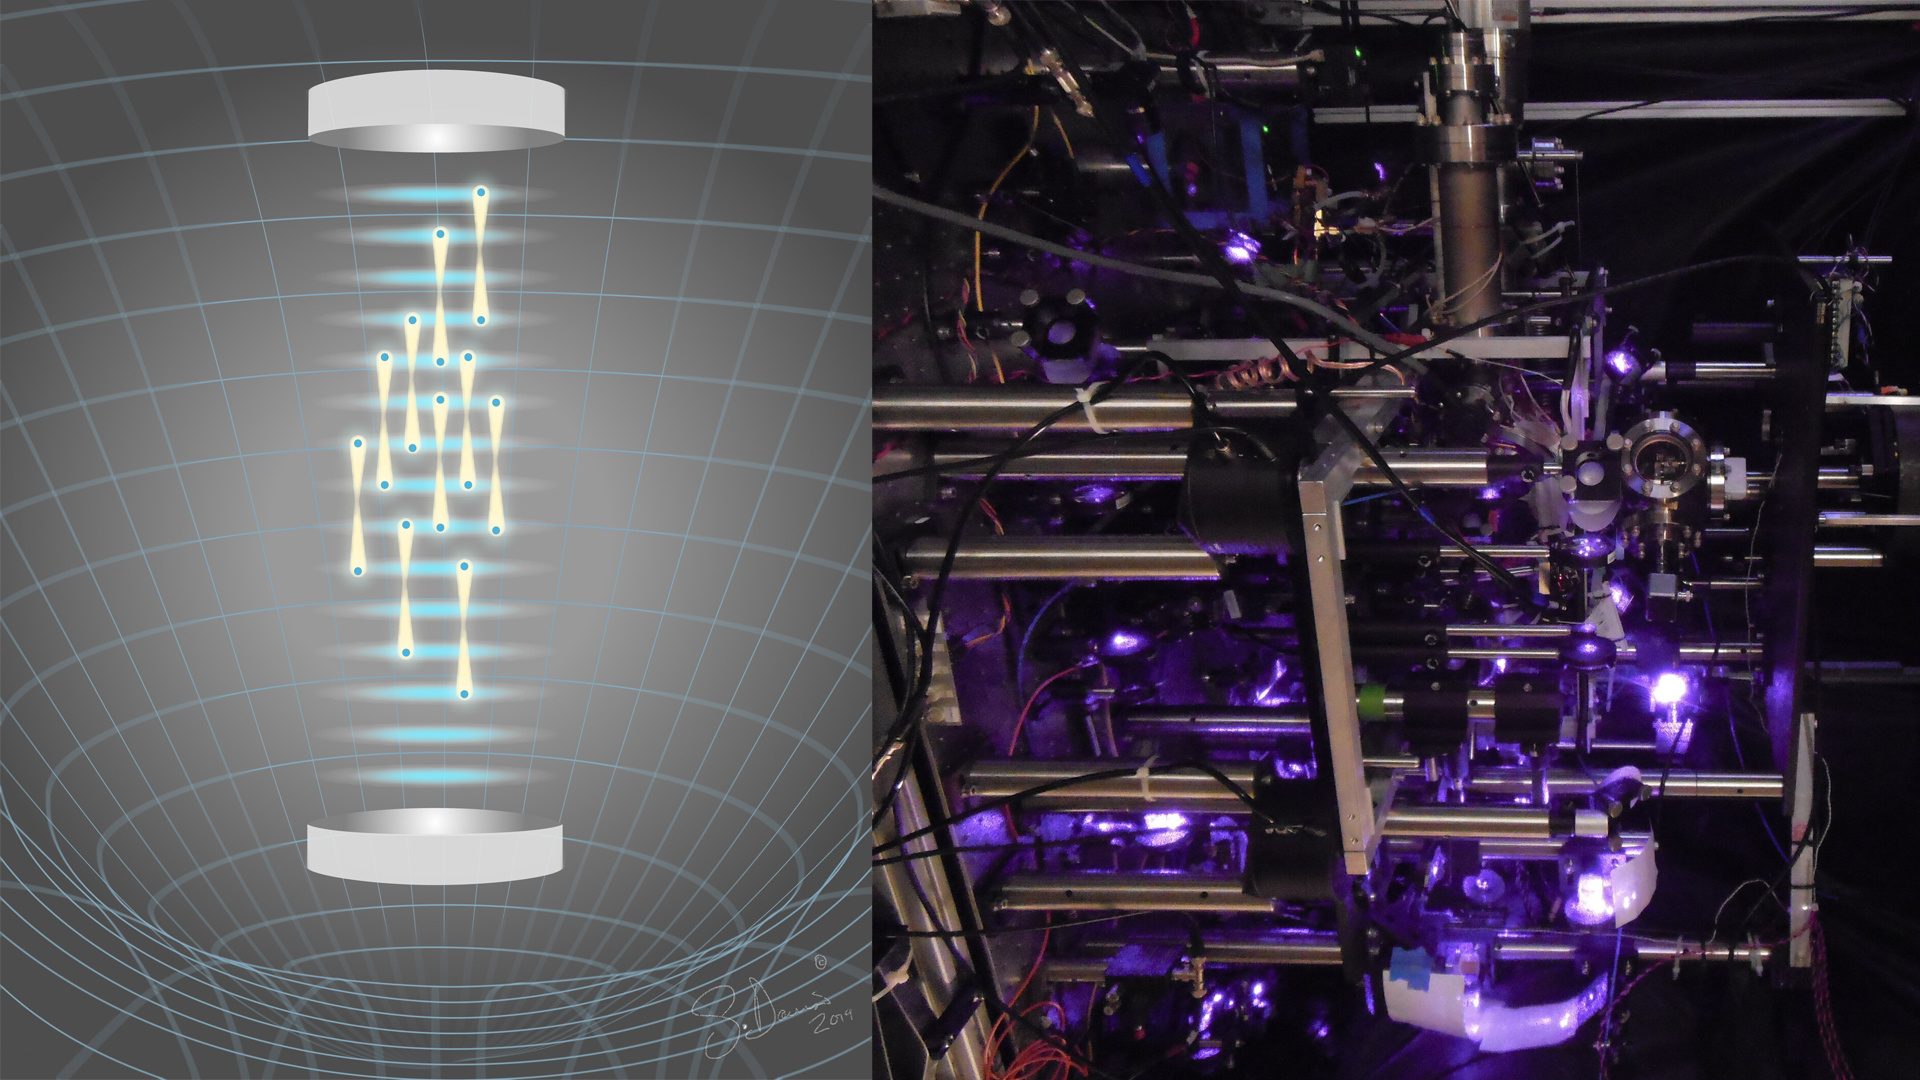 Scientists find a new way to measure gravity